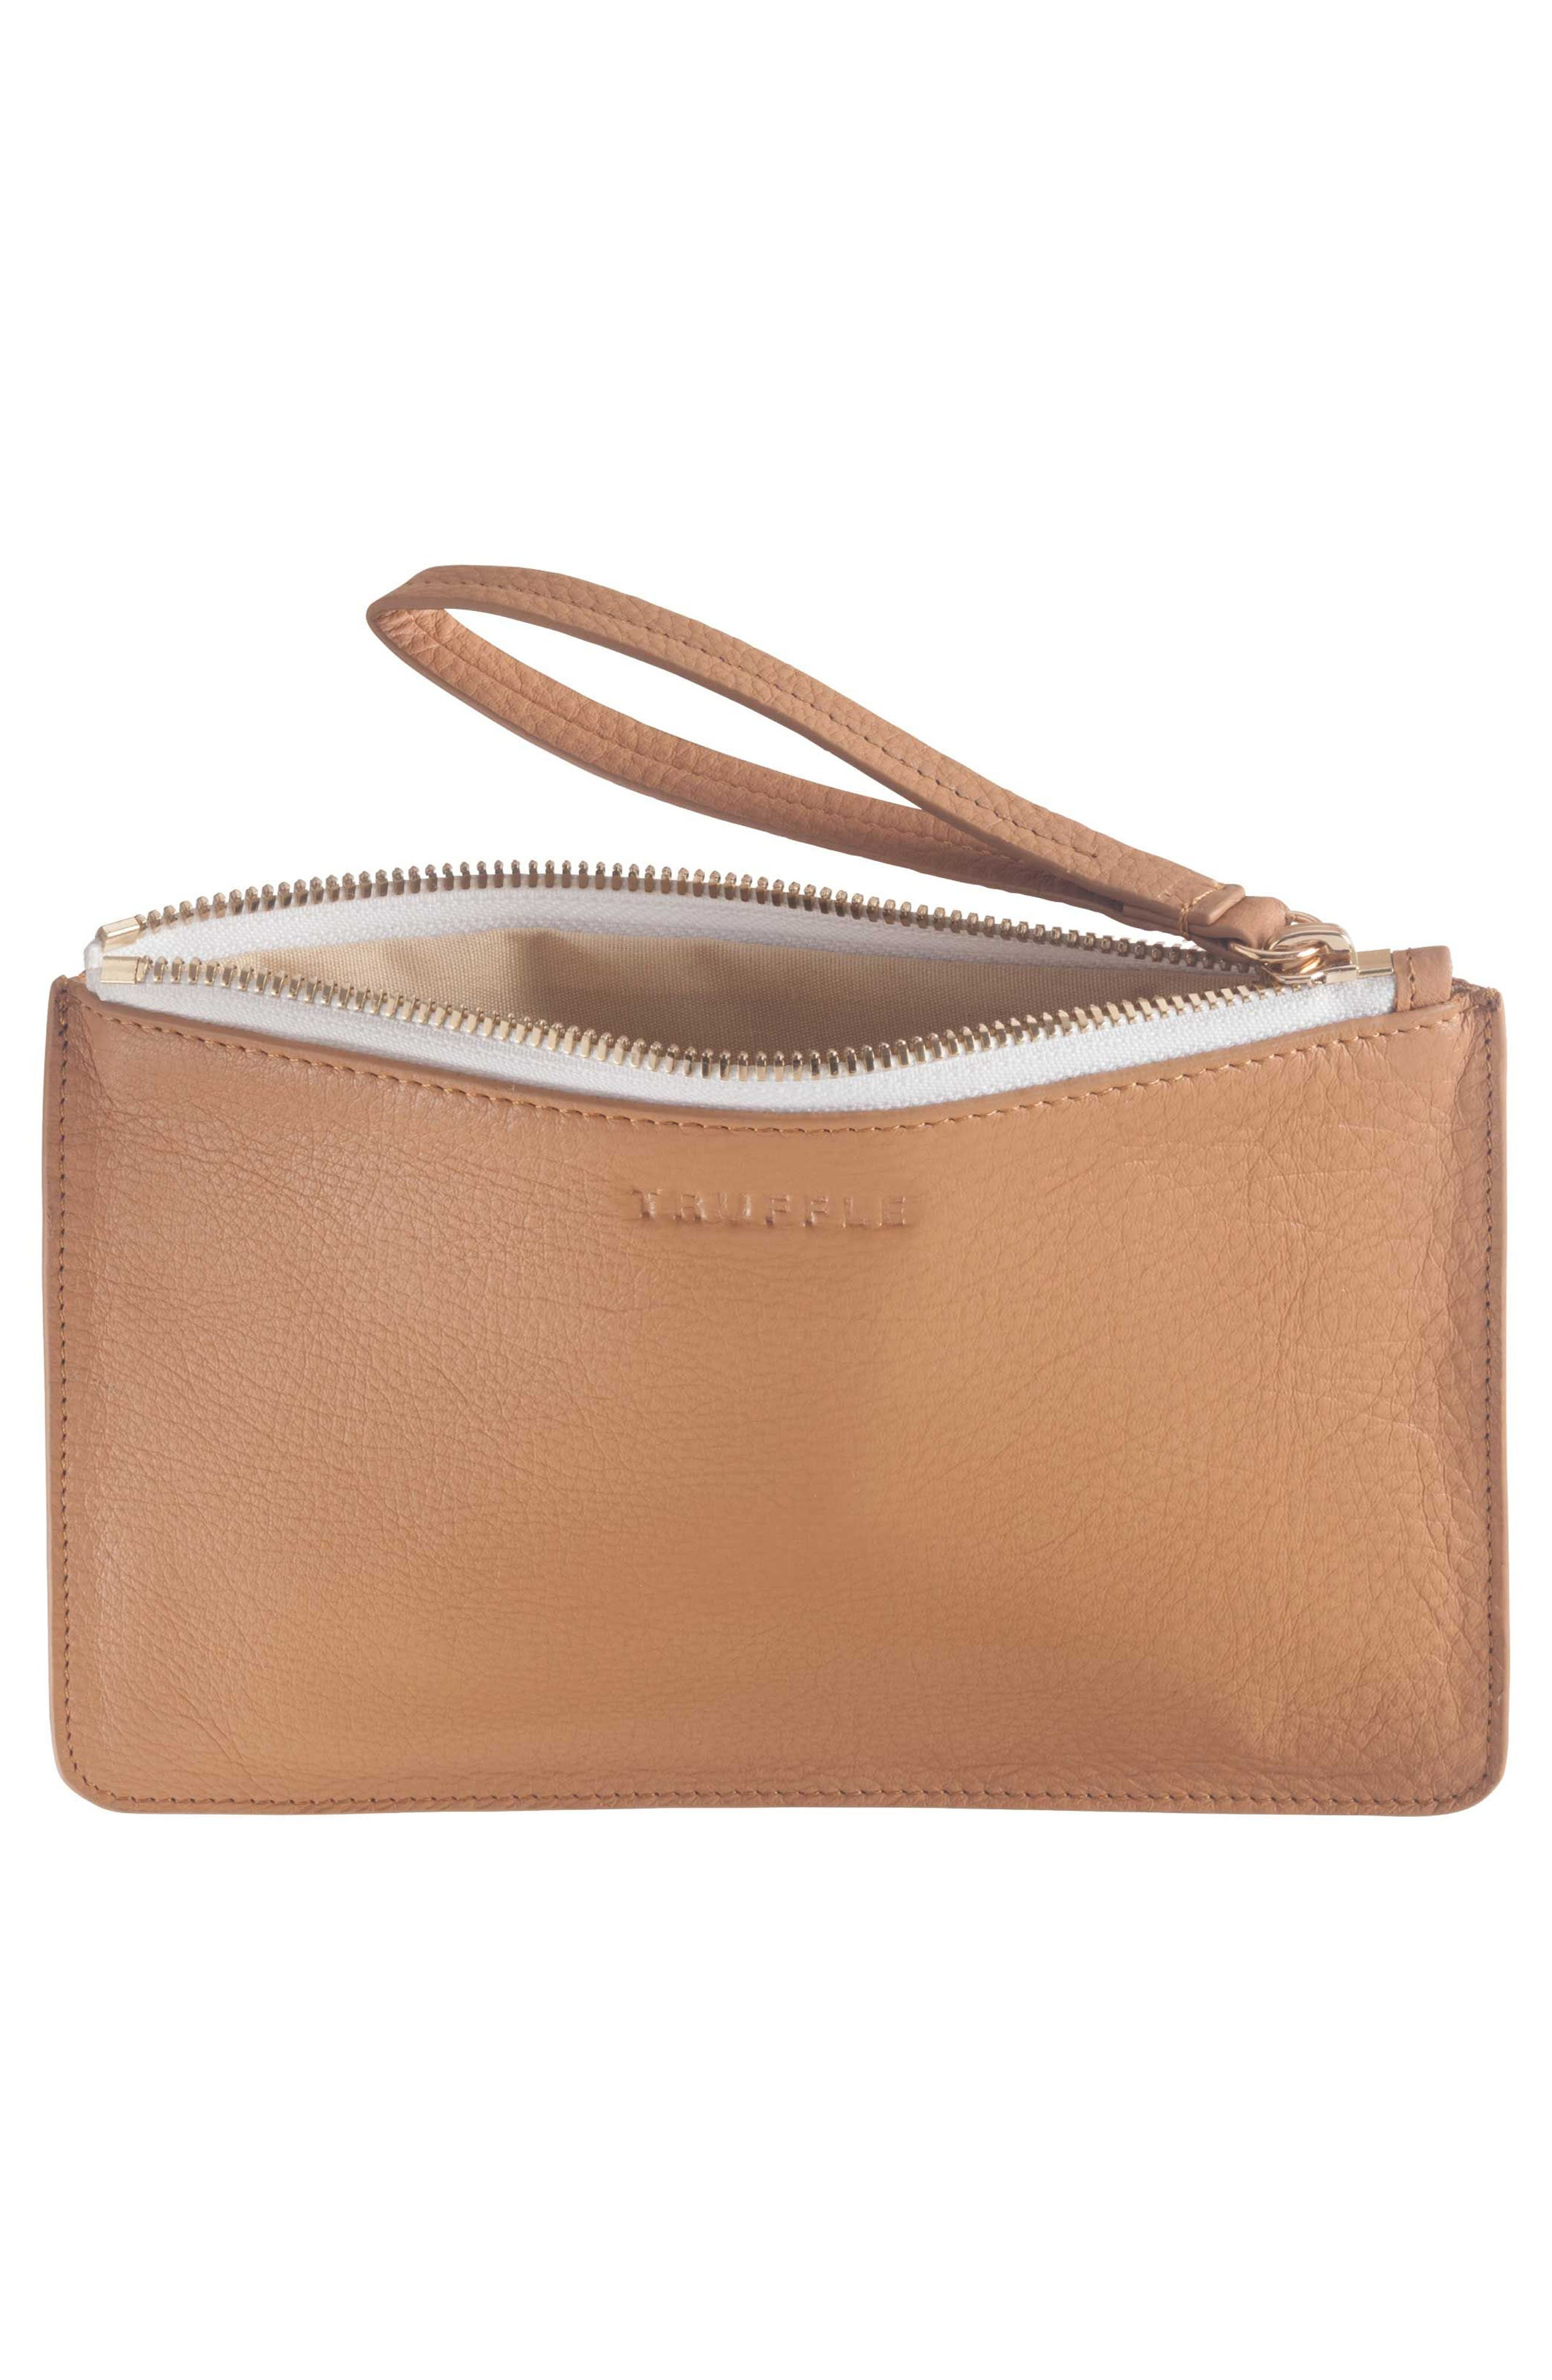 Privacy Leather Wristlet,                             Alternate thumbnail 4, color,                             Caramel